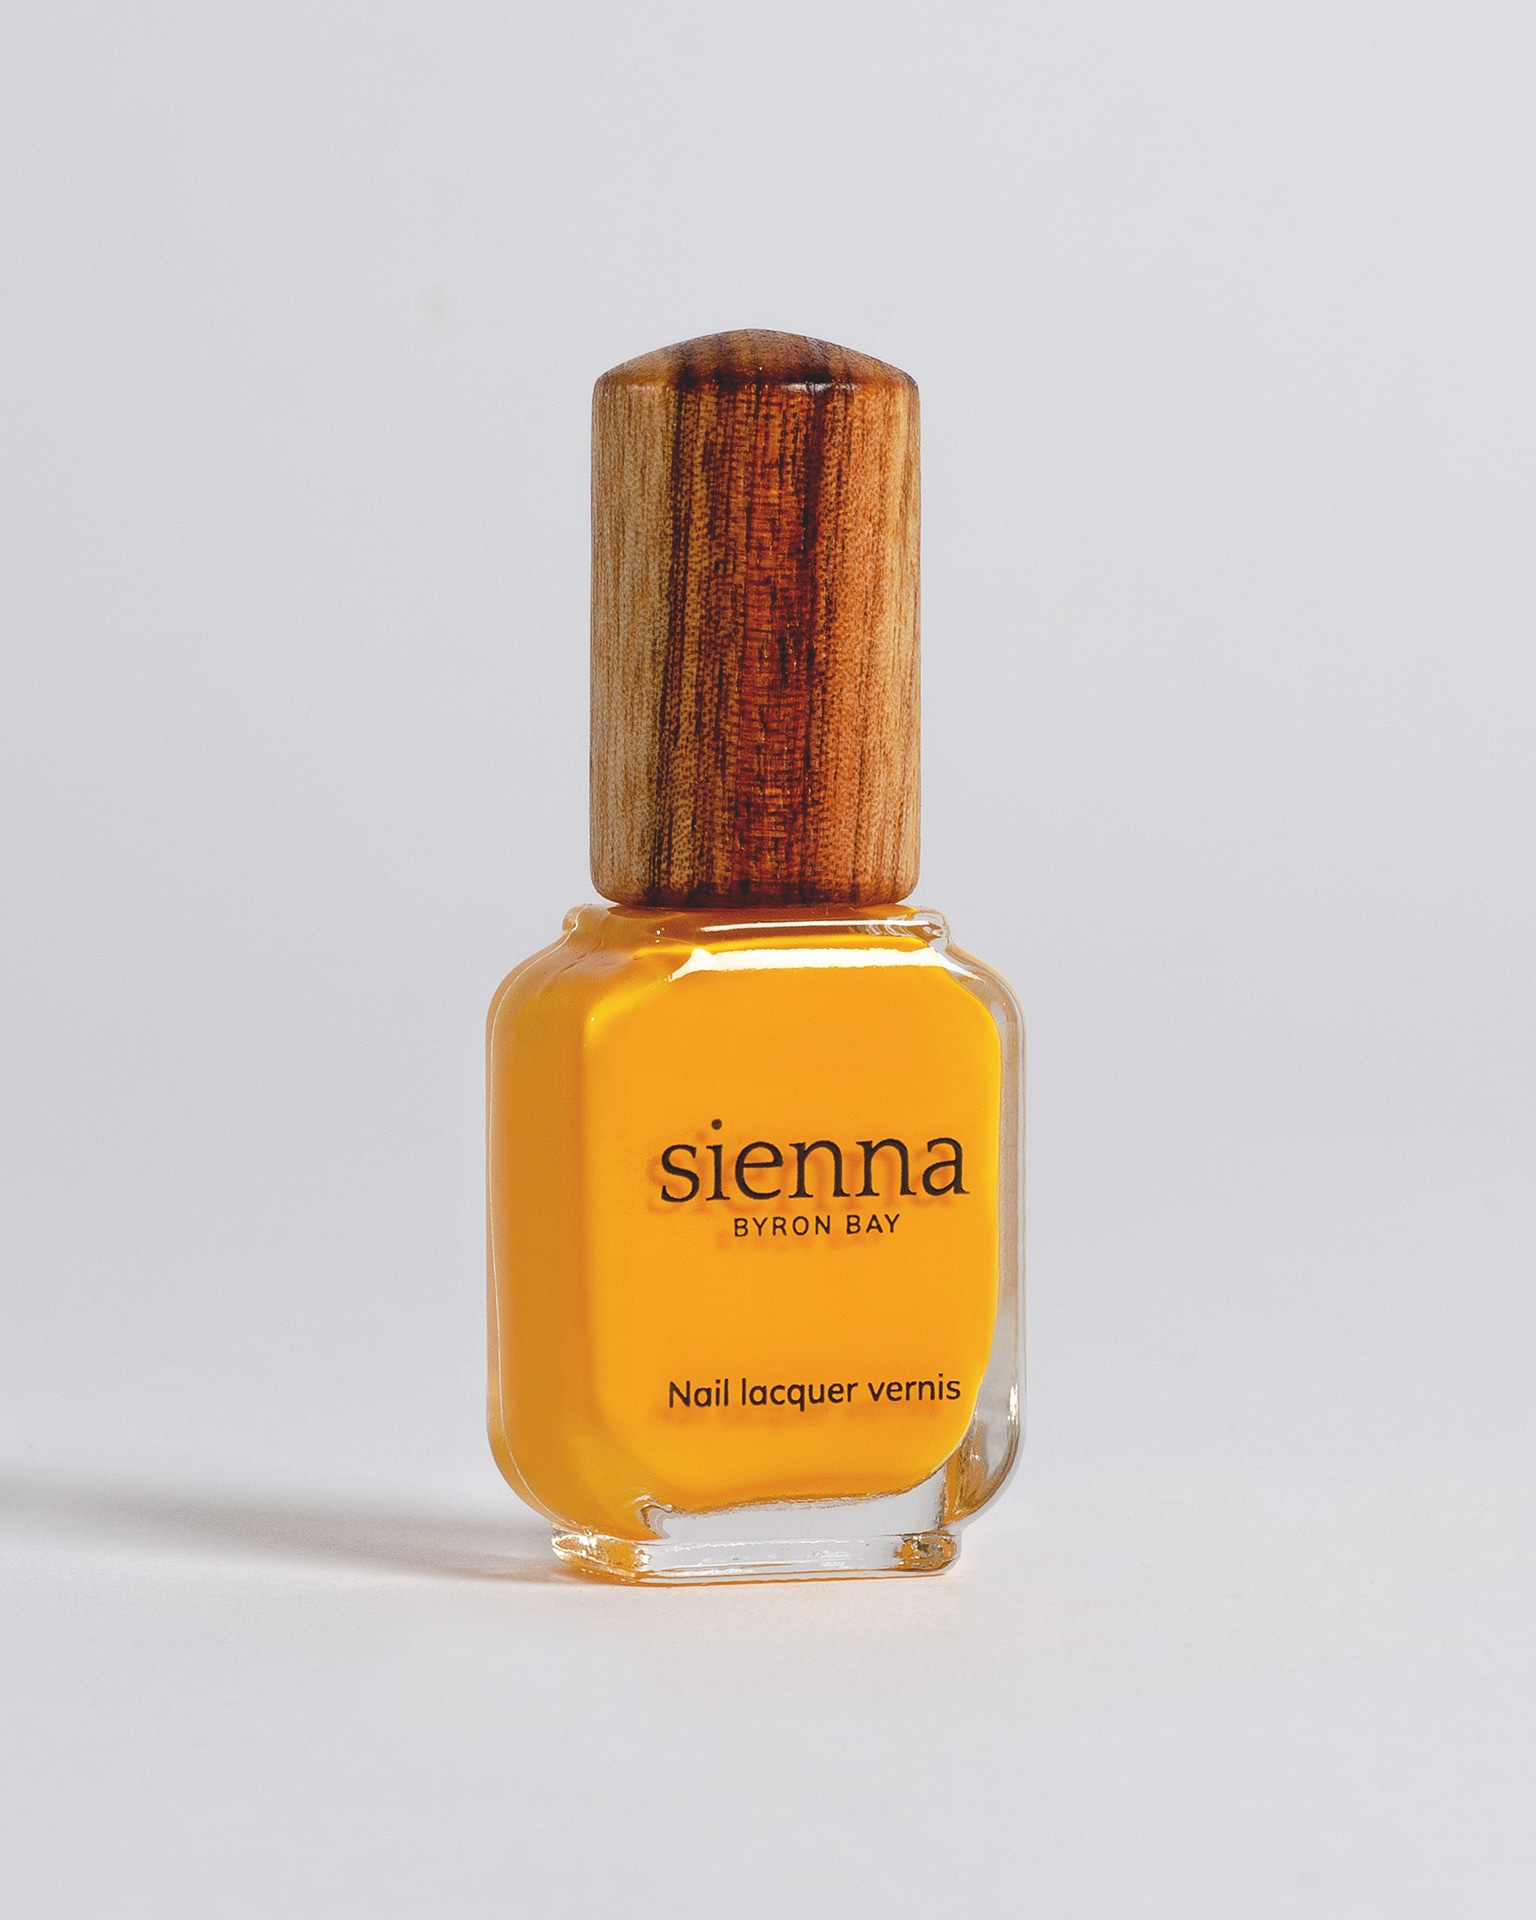 yellow nail polish bottle with timber cap by sienna